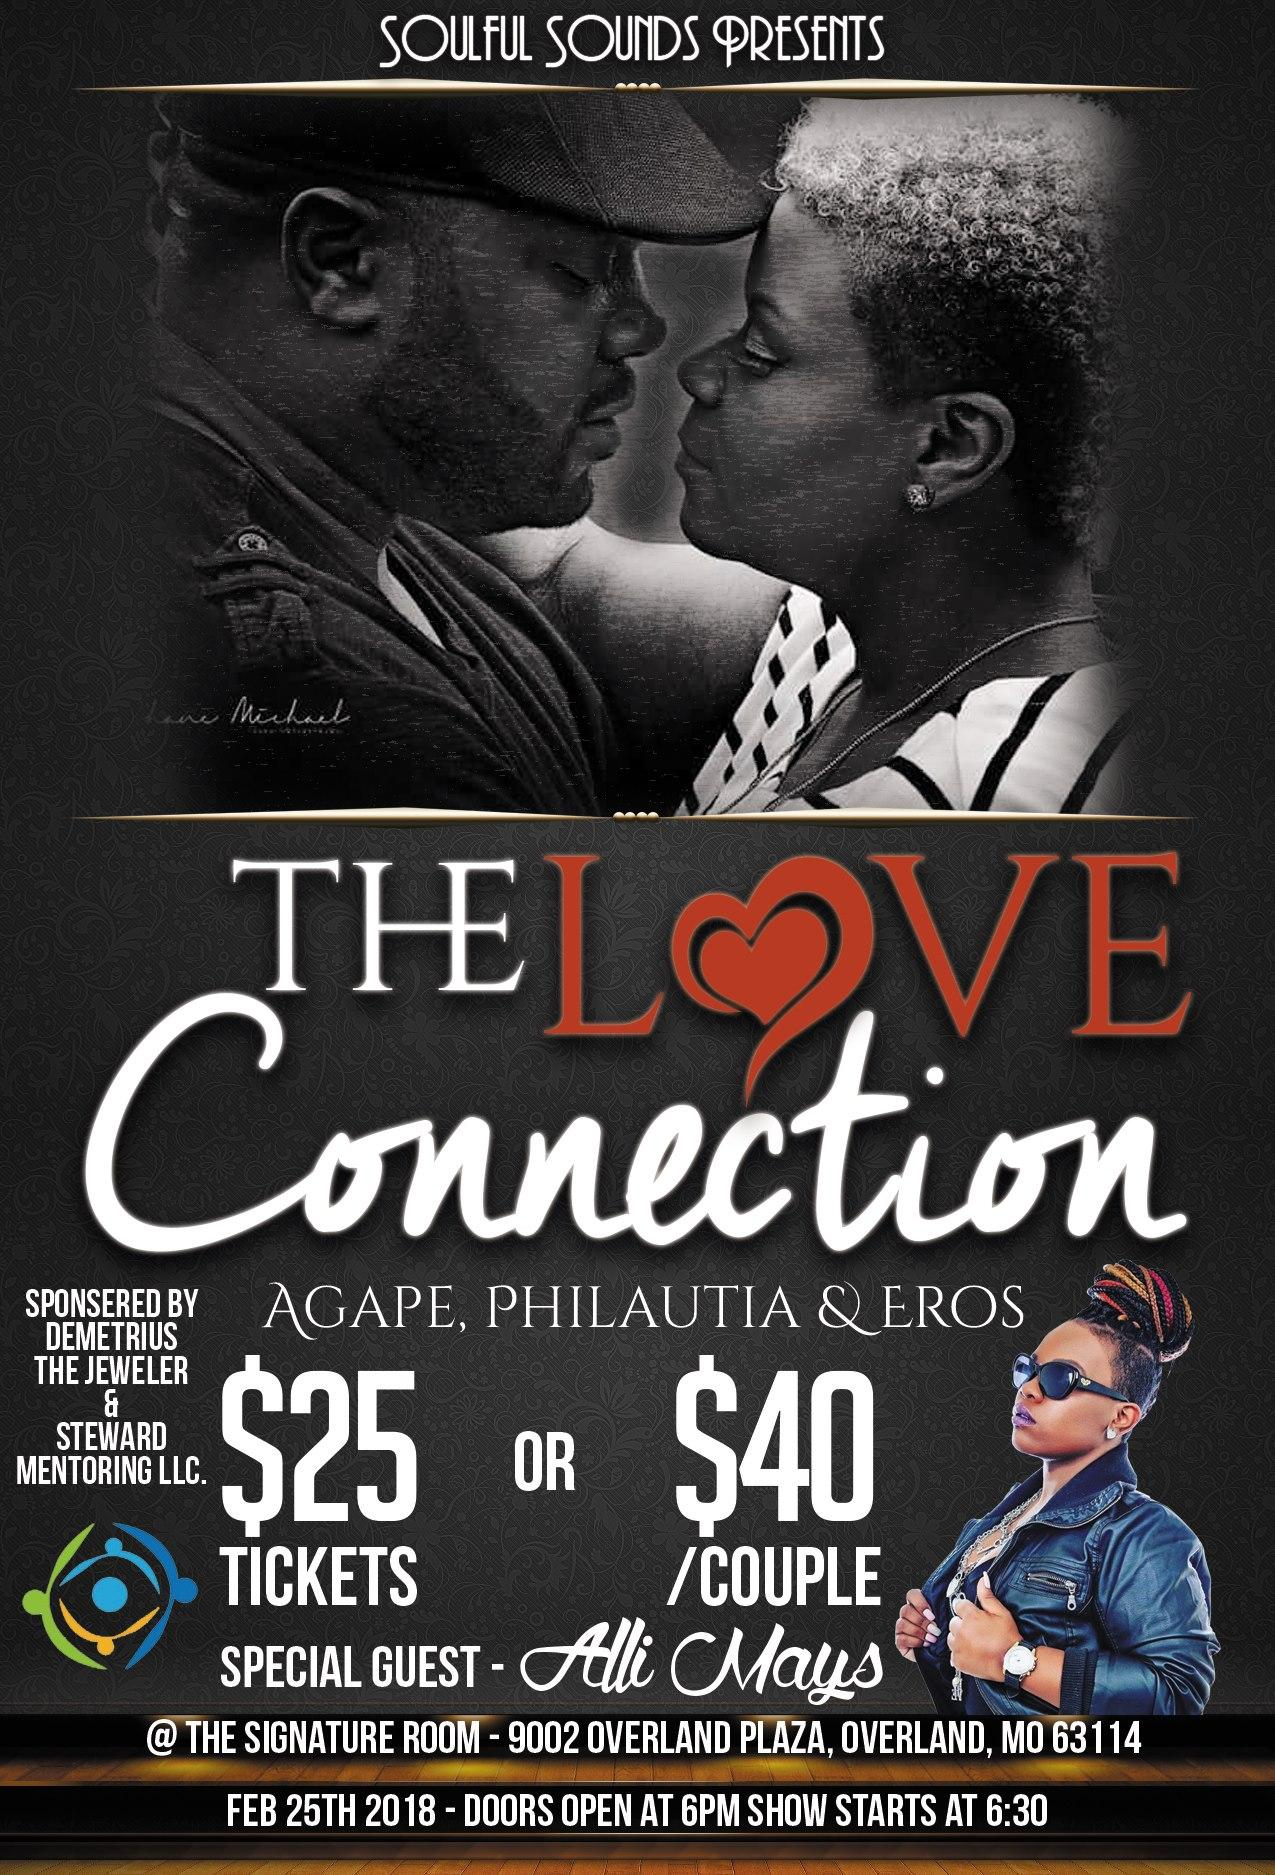 The Love Connection, Agape, Philautia & Eros